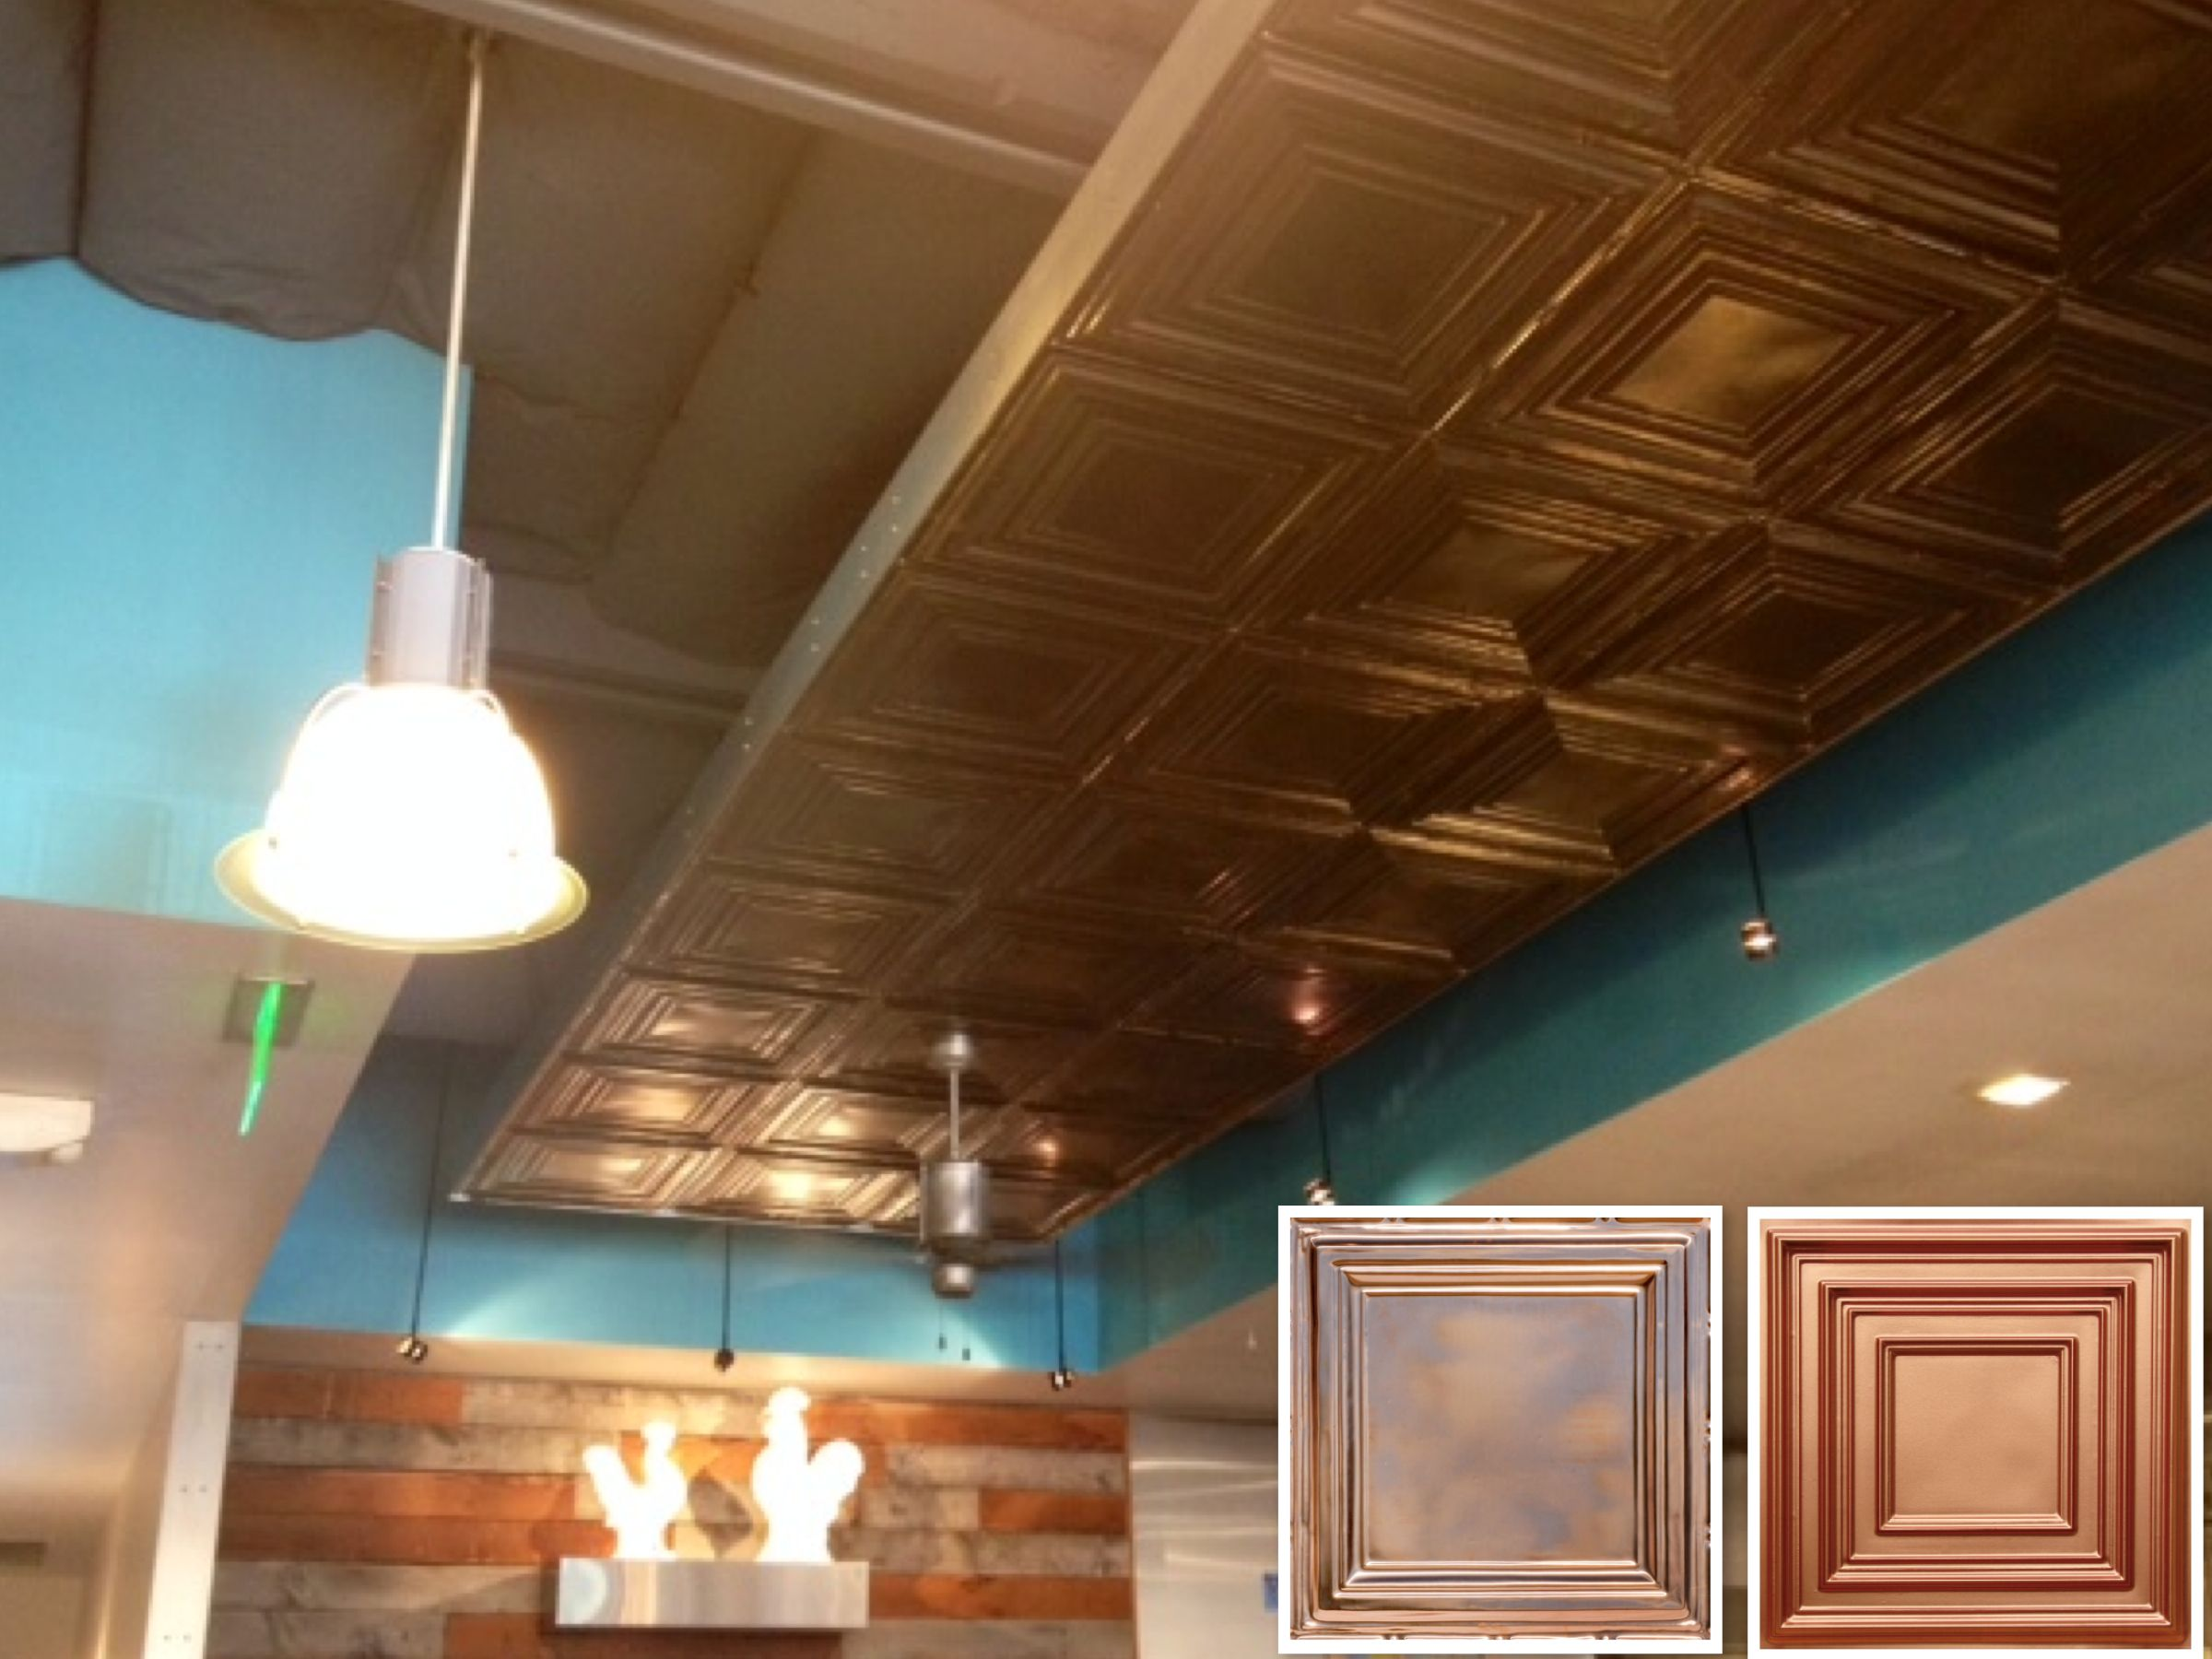 Ceiling Restaurant Ceiling Decor Inspiration Mendocino